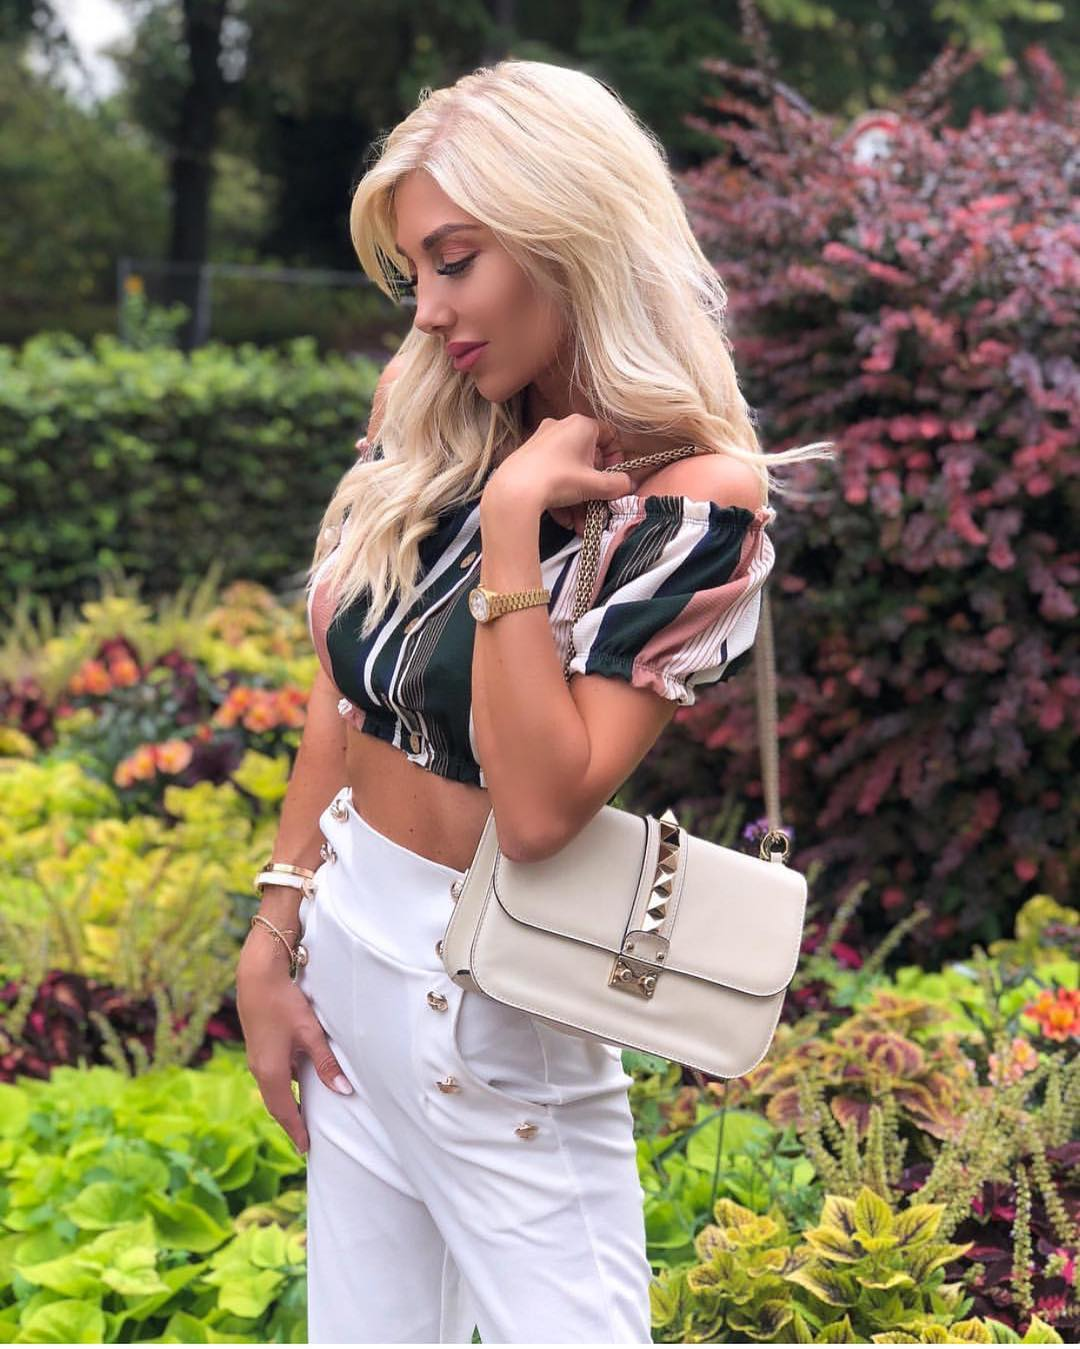 Multistripe Off Shoulder Crop Top And Gold Buttoned White Pants For Summer 2019